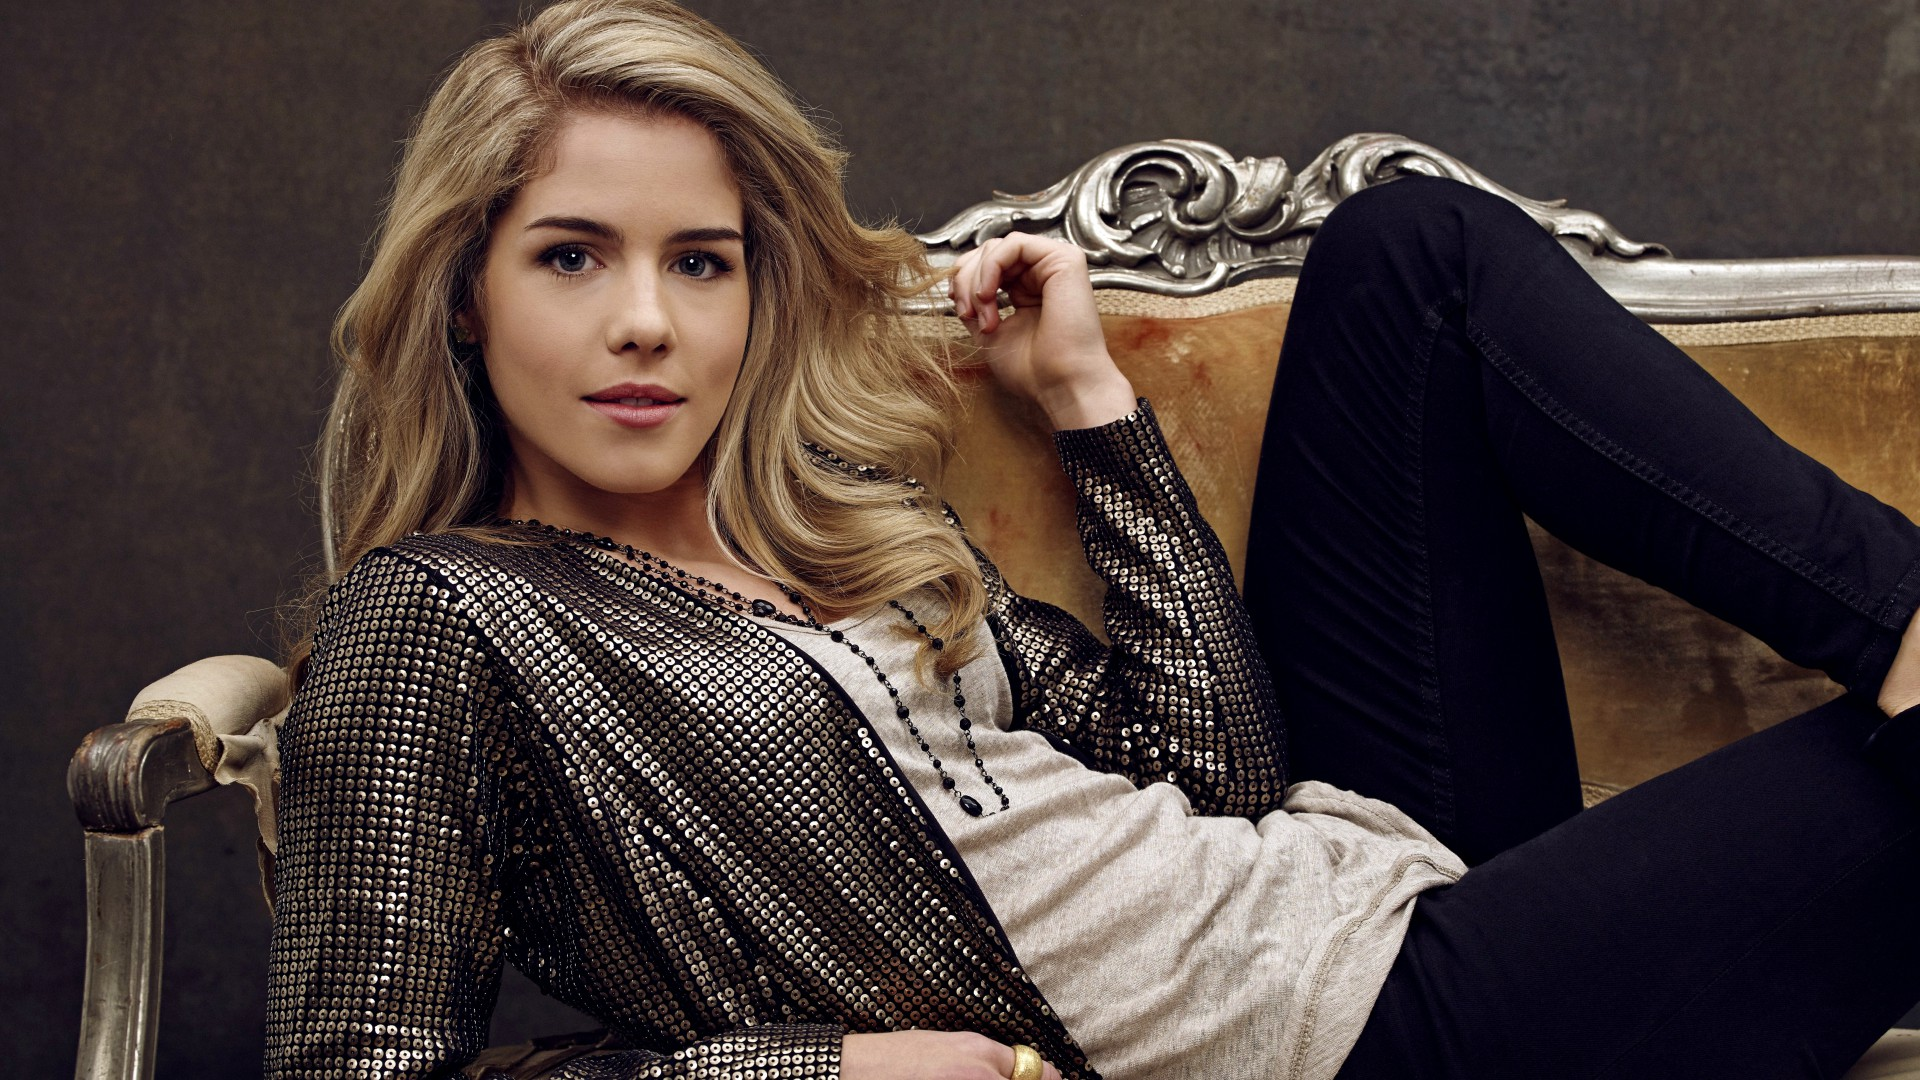 Emily Bett Rickards, Most Popular Celebs in 2015, actress, blonde (horizontal)